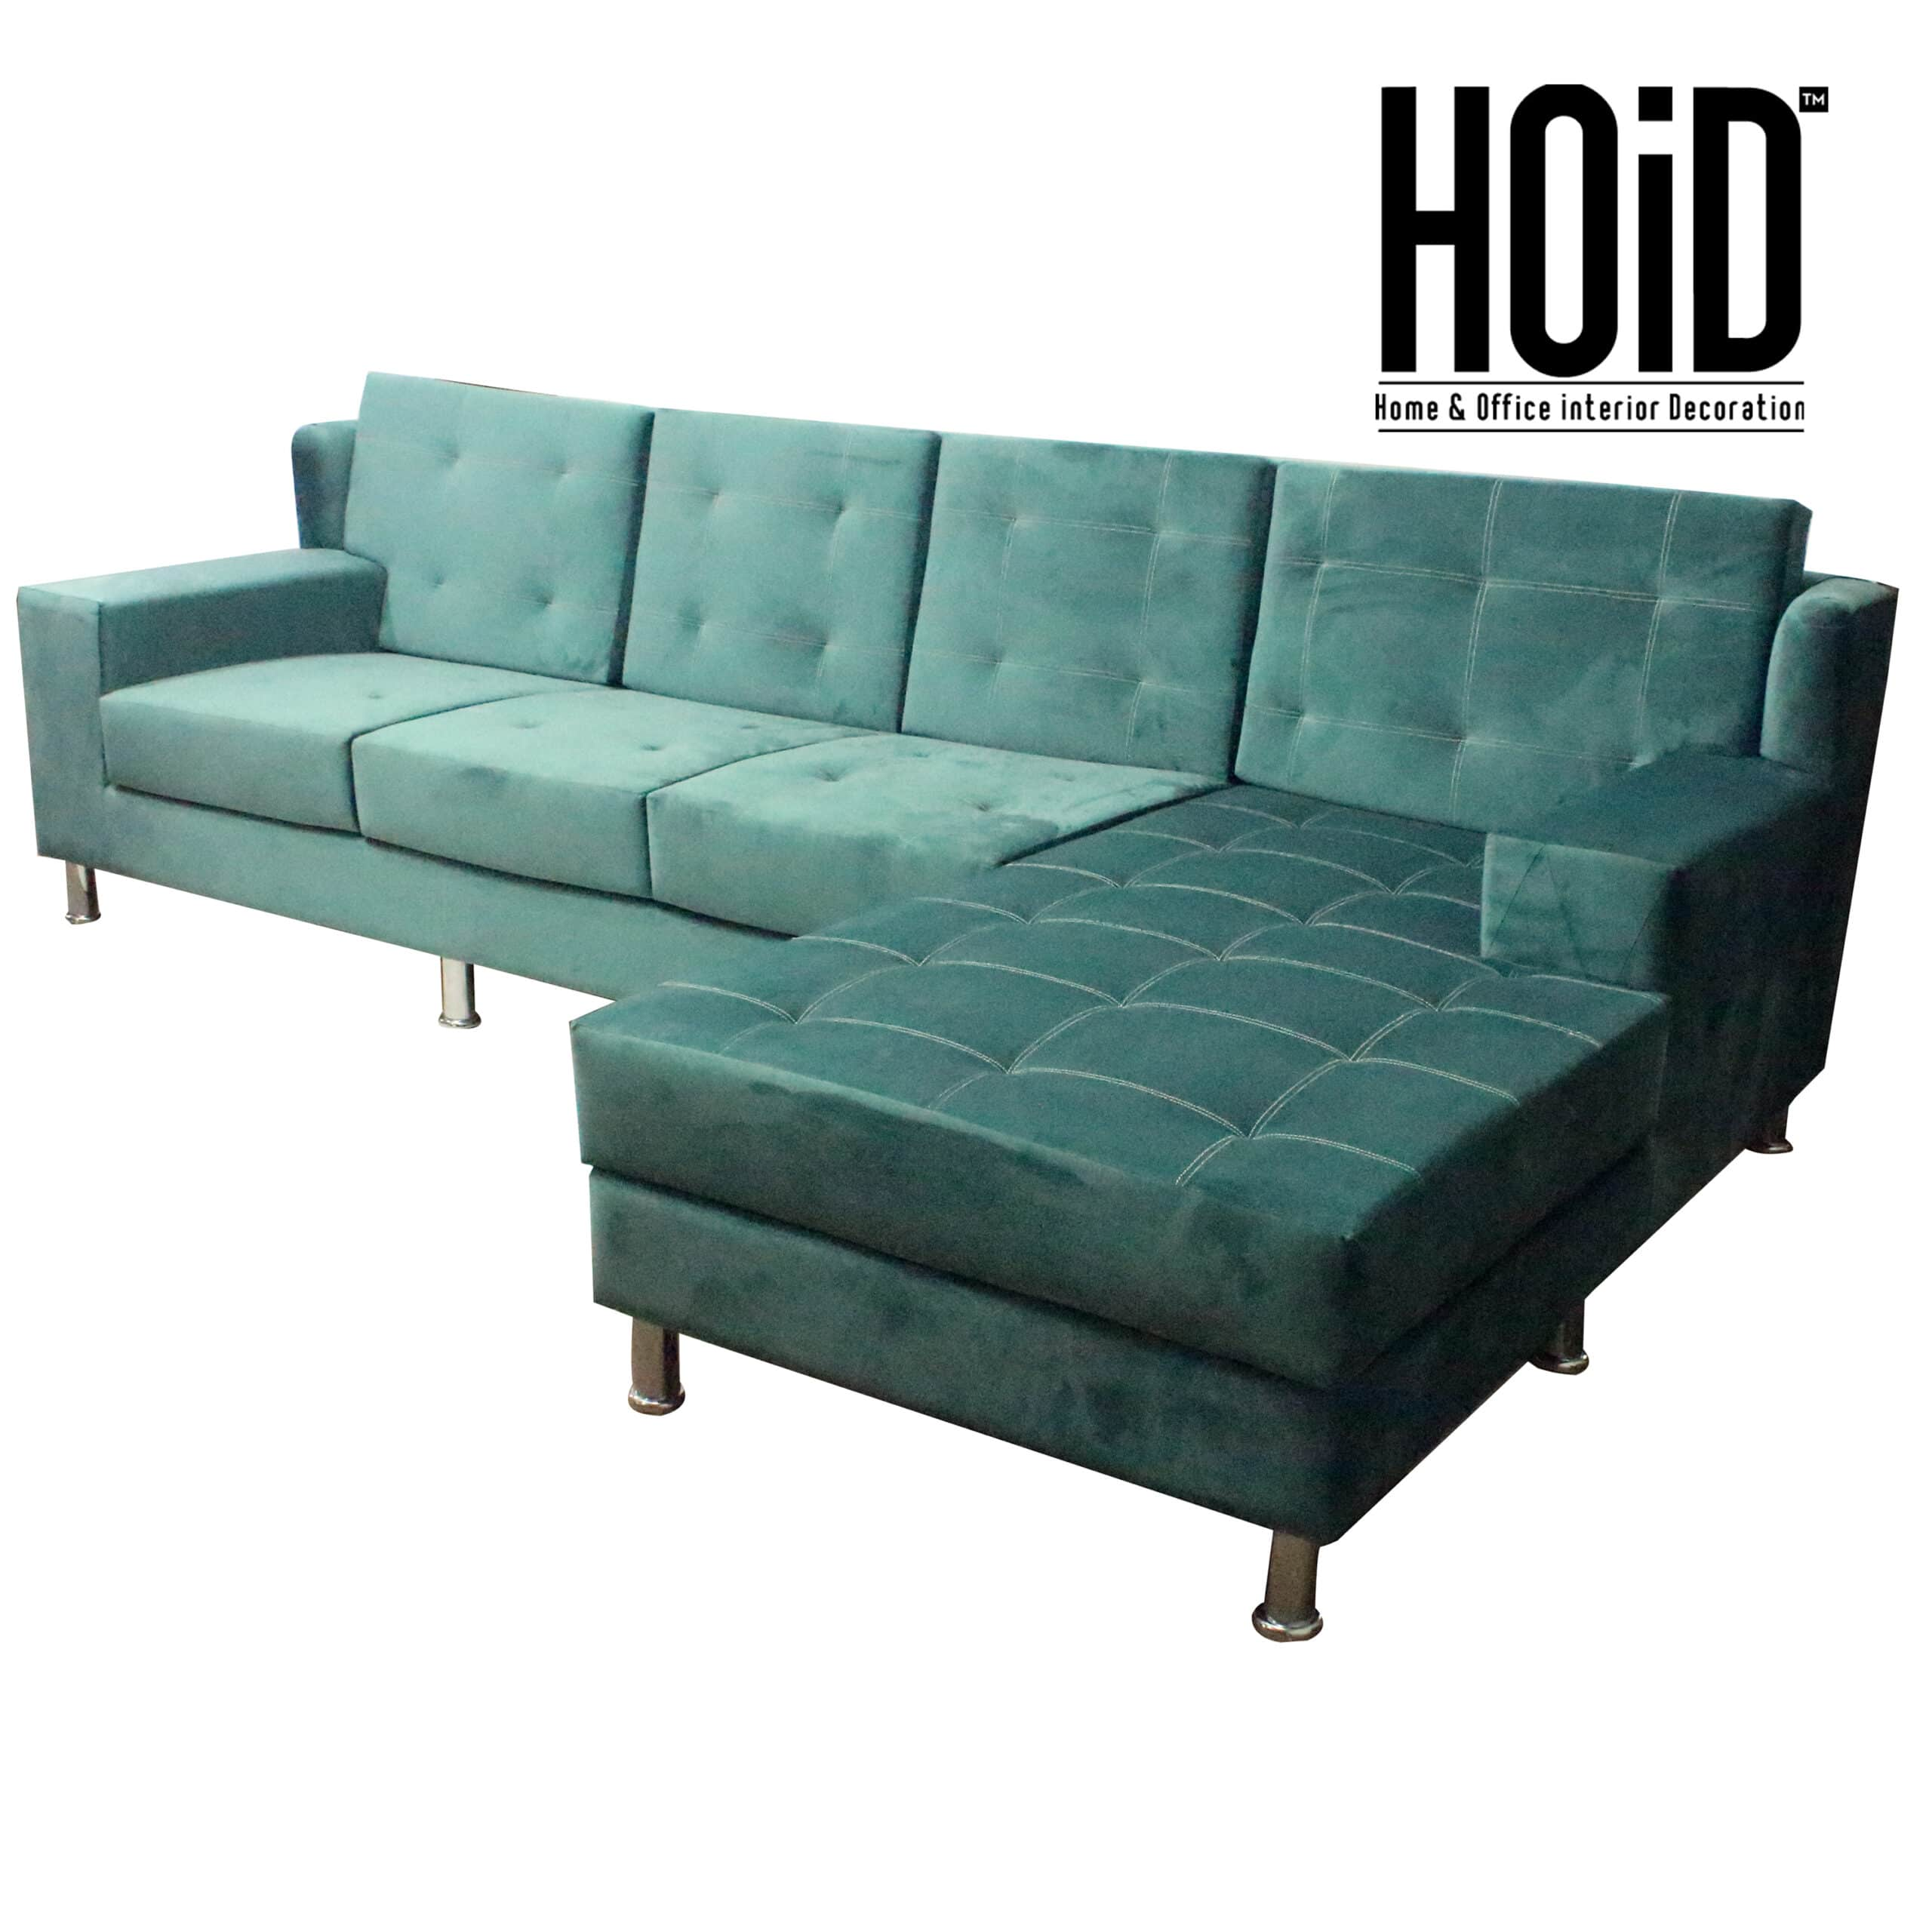 Picture of: Bob 6 Seater L Shaped Sofa Hoid Pk